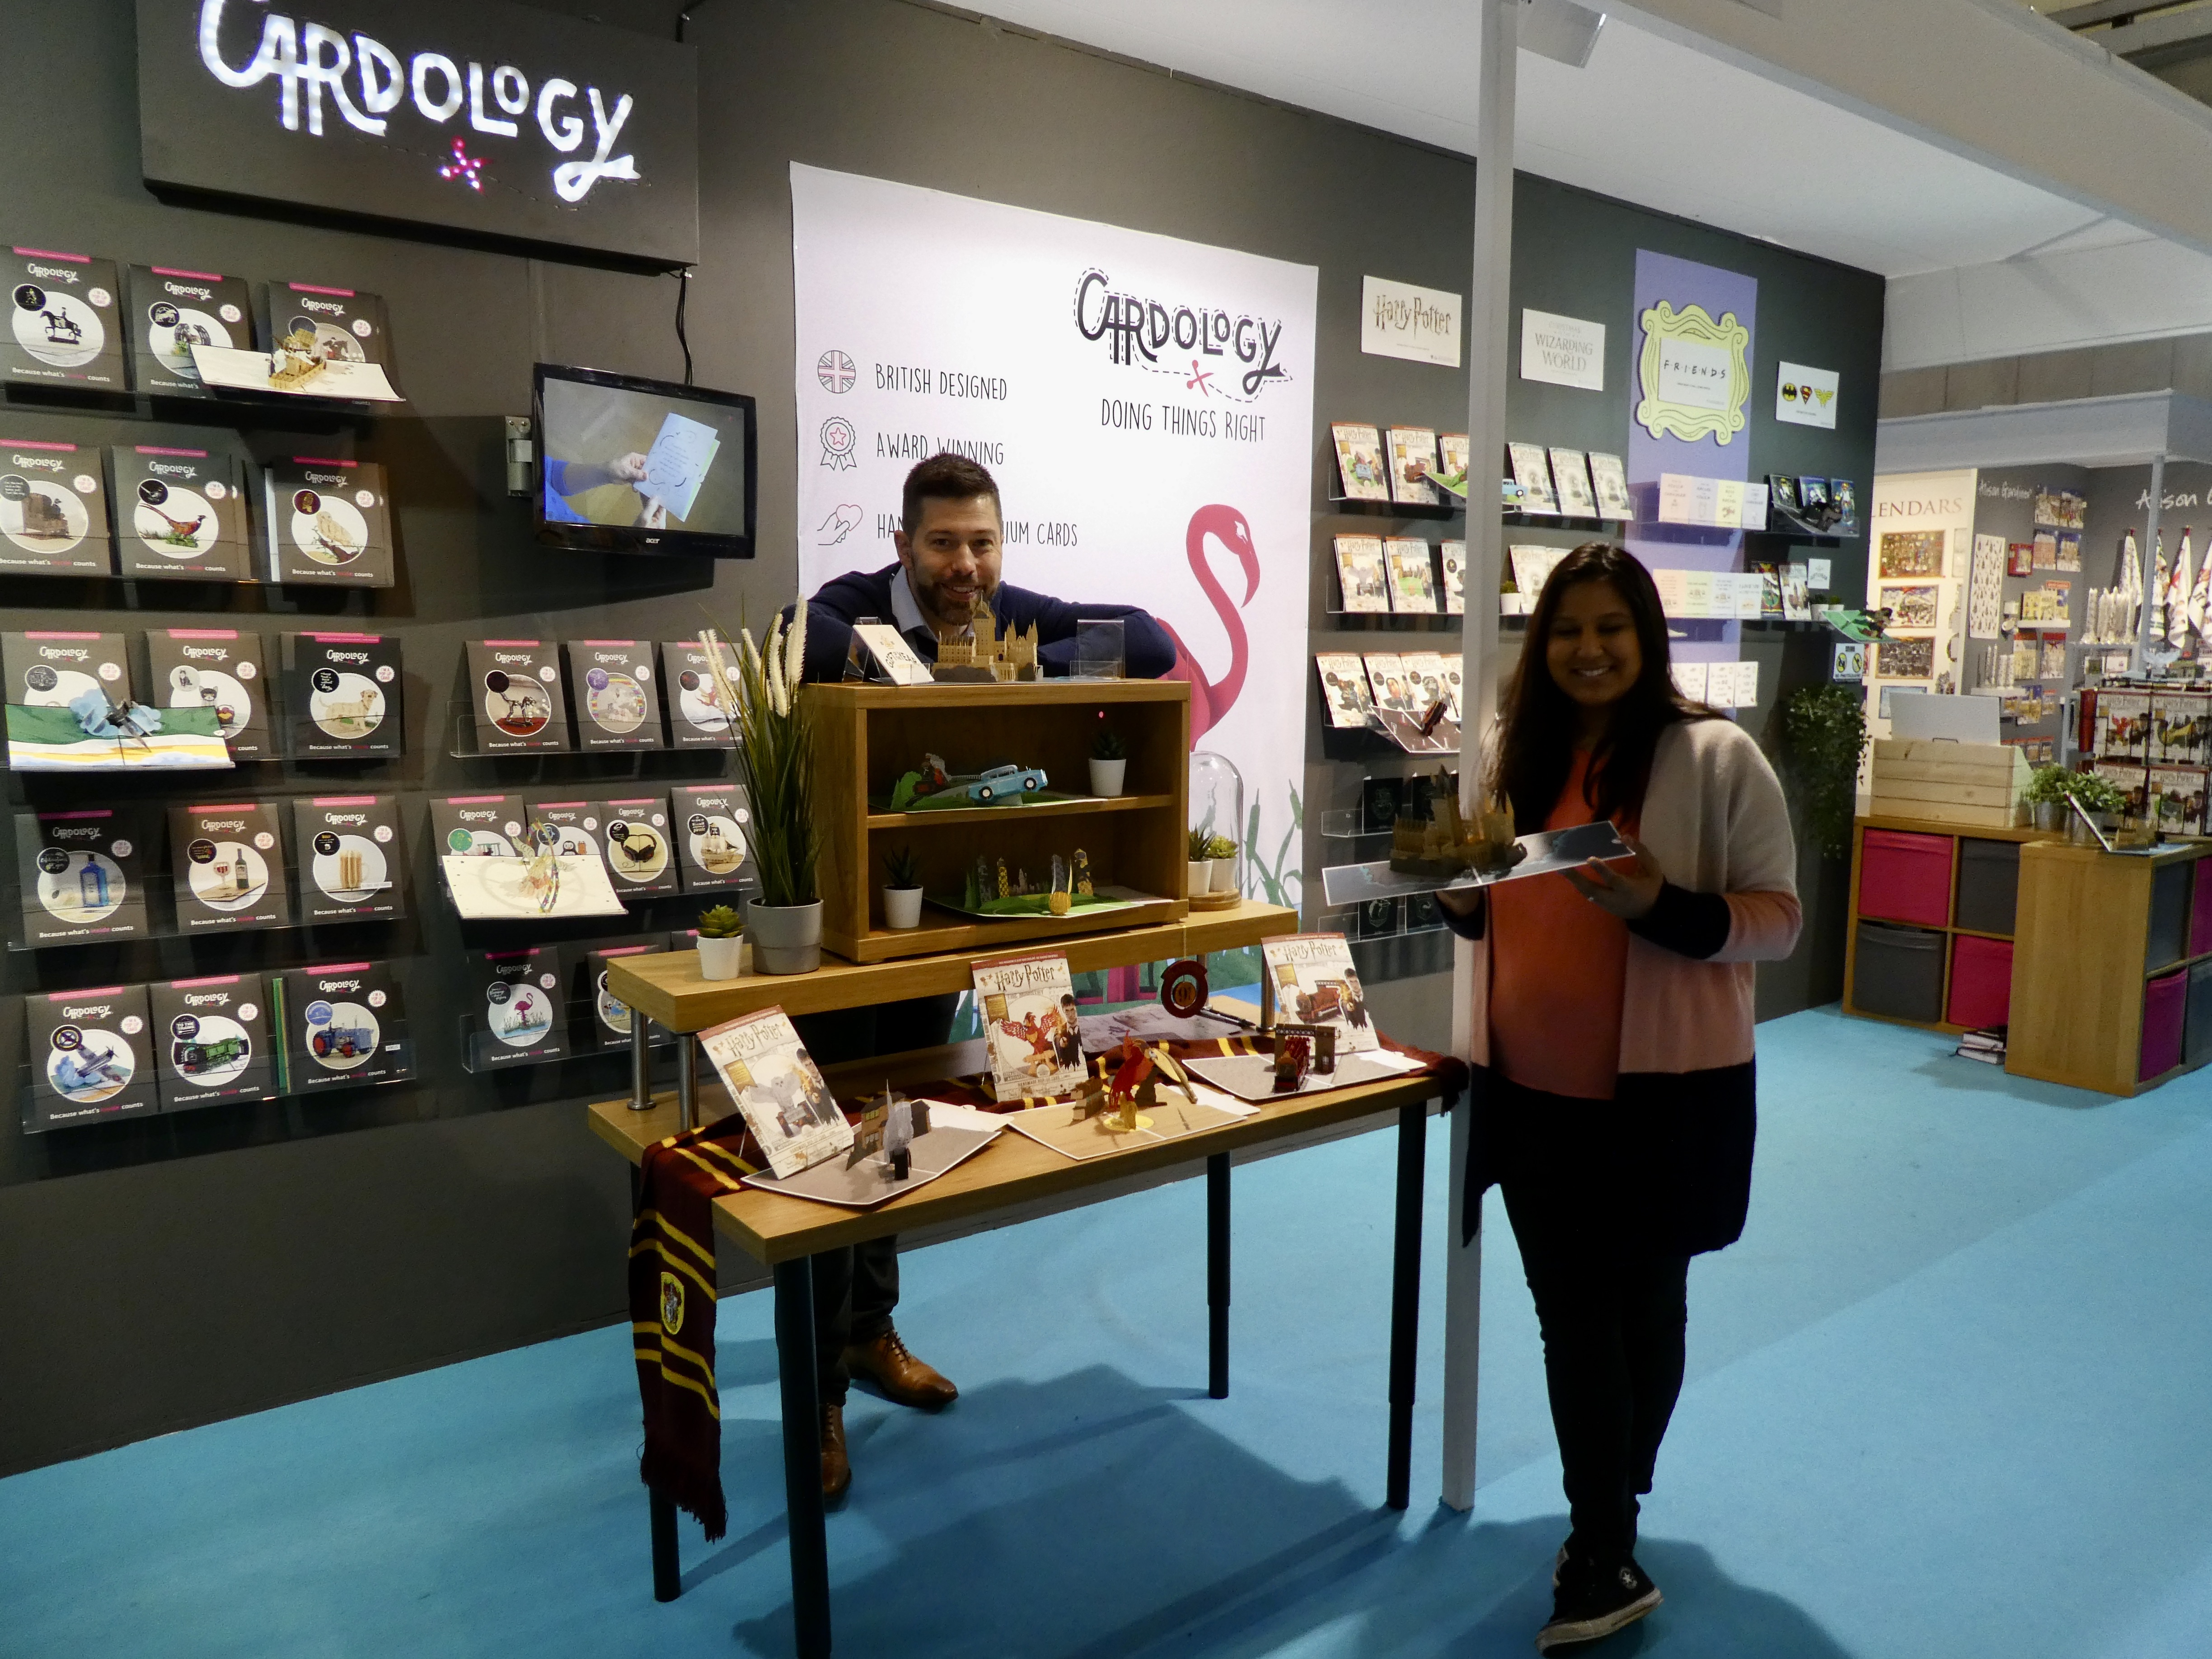 Above: Cardology's co-owners David Falkner and Dipa Shah worked their 'magic', officially launching its Harry Potter 3D card range.